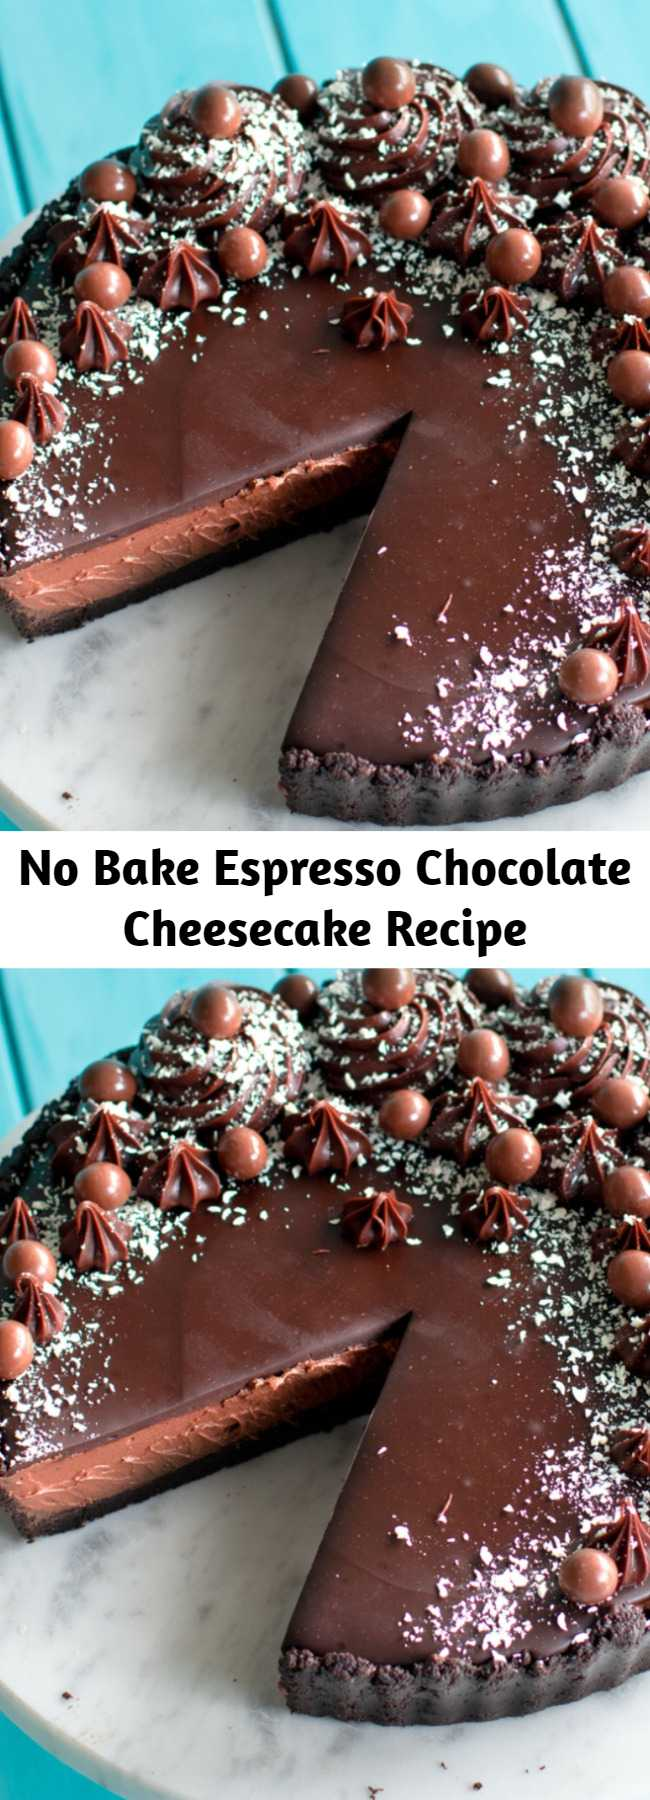 No Bake Espresso Chocolate Cheesecake Recipe - Espresso your love for cheesecake, chocolate & coffee, all in one dessert. This no-bake espresso chocolate cheesecake is the perfect afternoon pick-me-up.